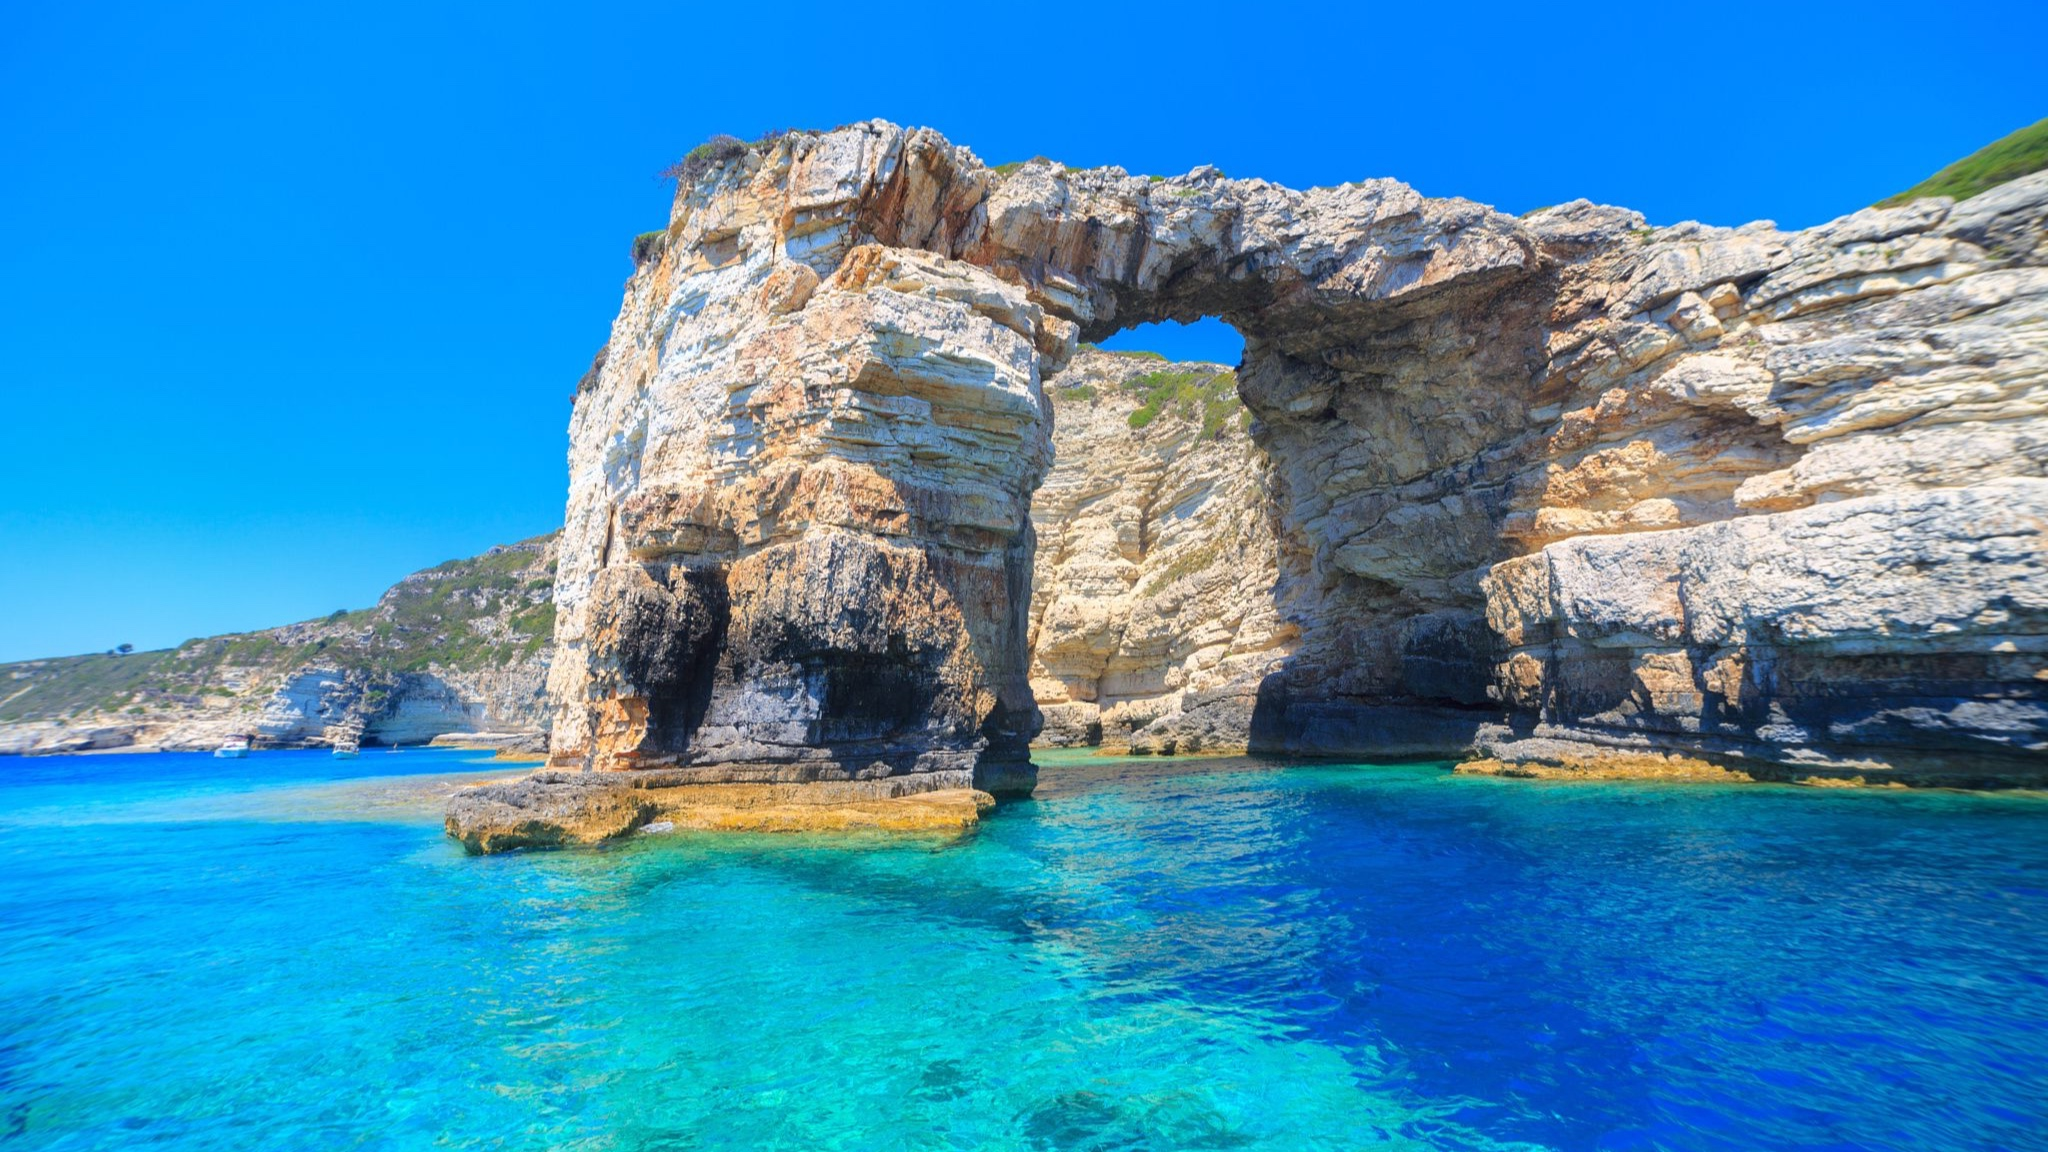 DAILY CRUISES - DISCOVER THE SECRET BEACHES